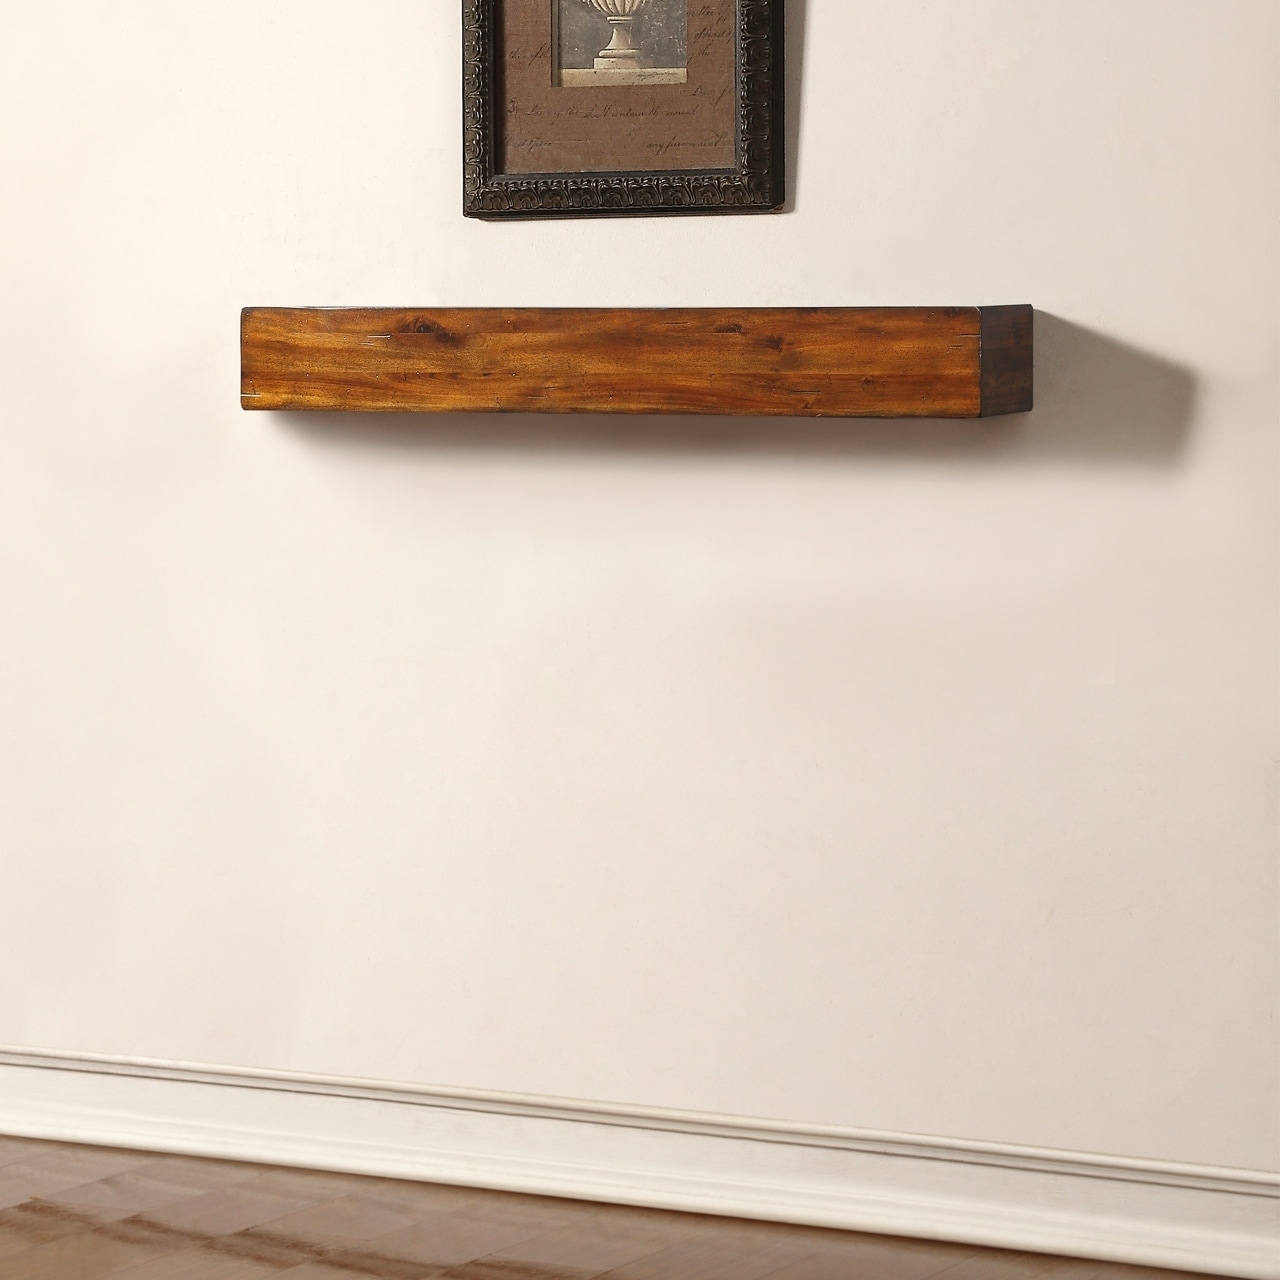 Shop Duluth Forge 48 Inch Fireplace Shelf Mantel With Corbels